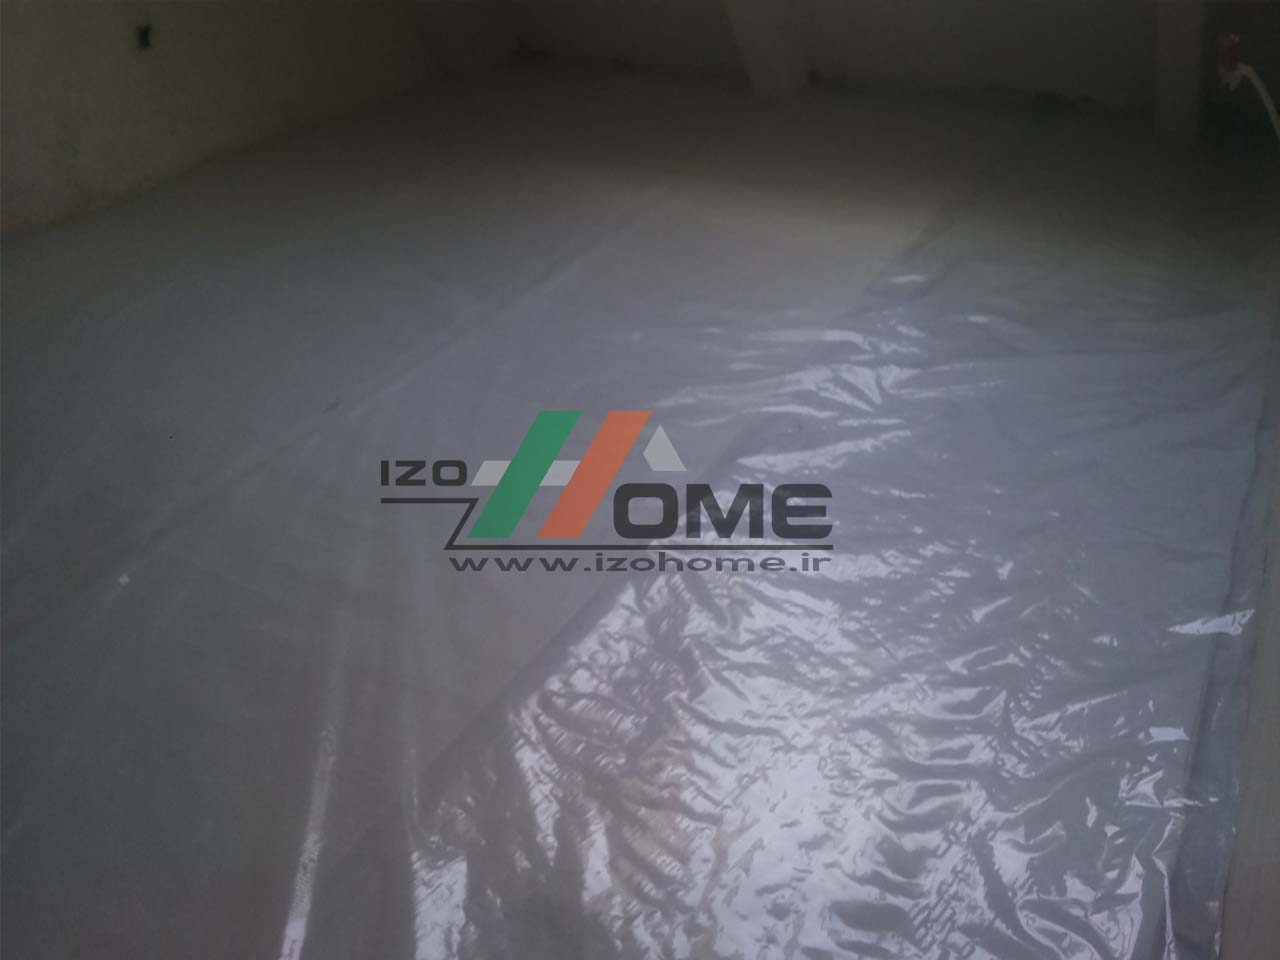 izohome65 - Sound insulation for the floor